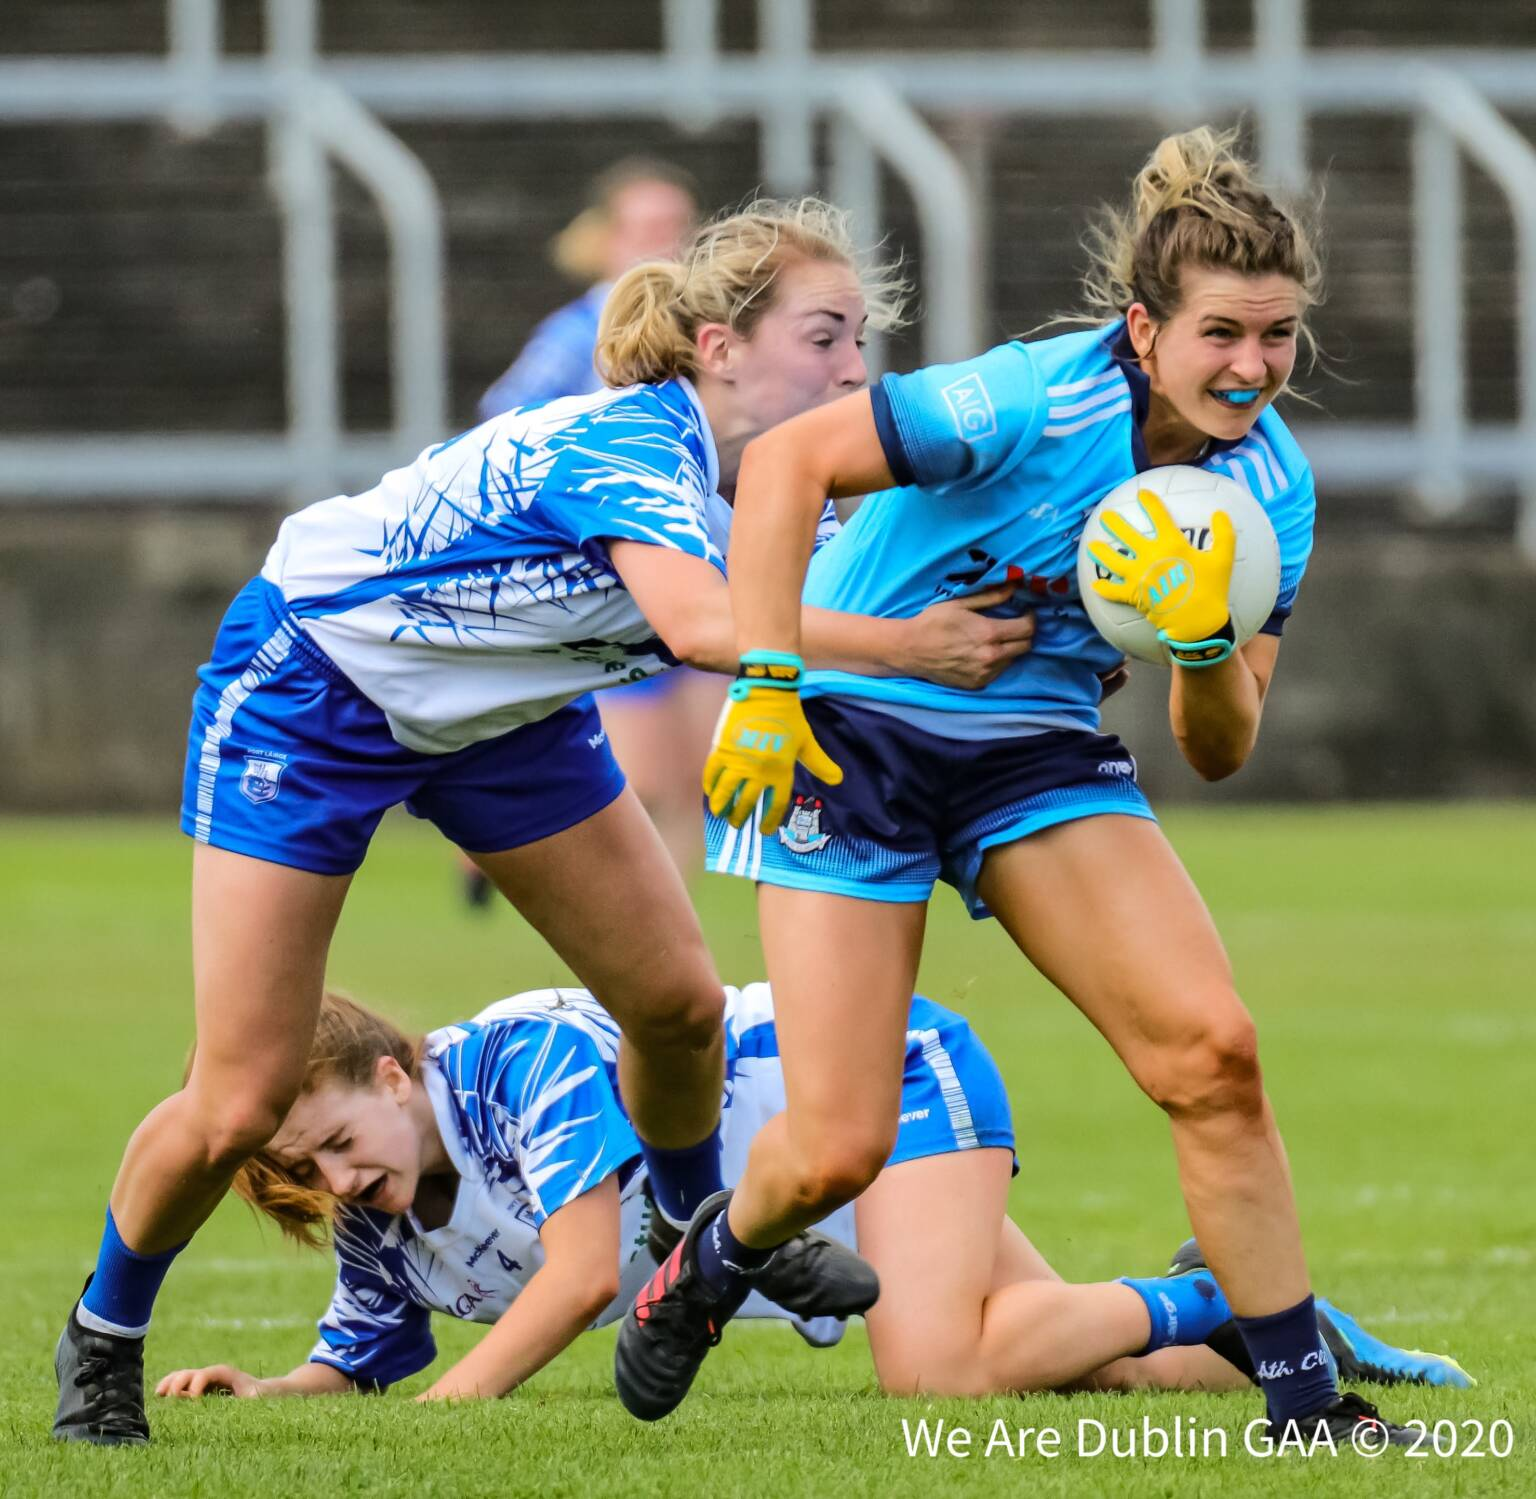 Dublin's Martha Byrne breaks away from a Waterford player during last year's championship, both sides meet again in round 2 of this years competition.